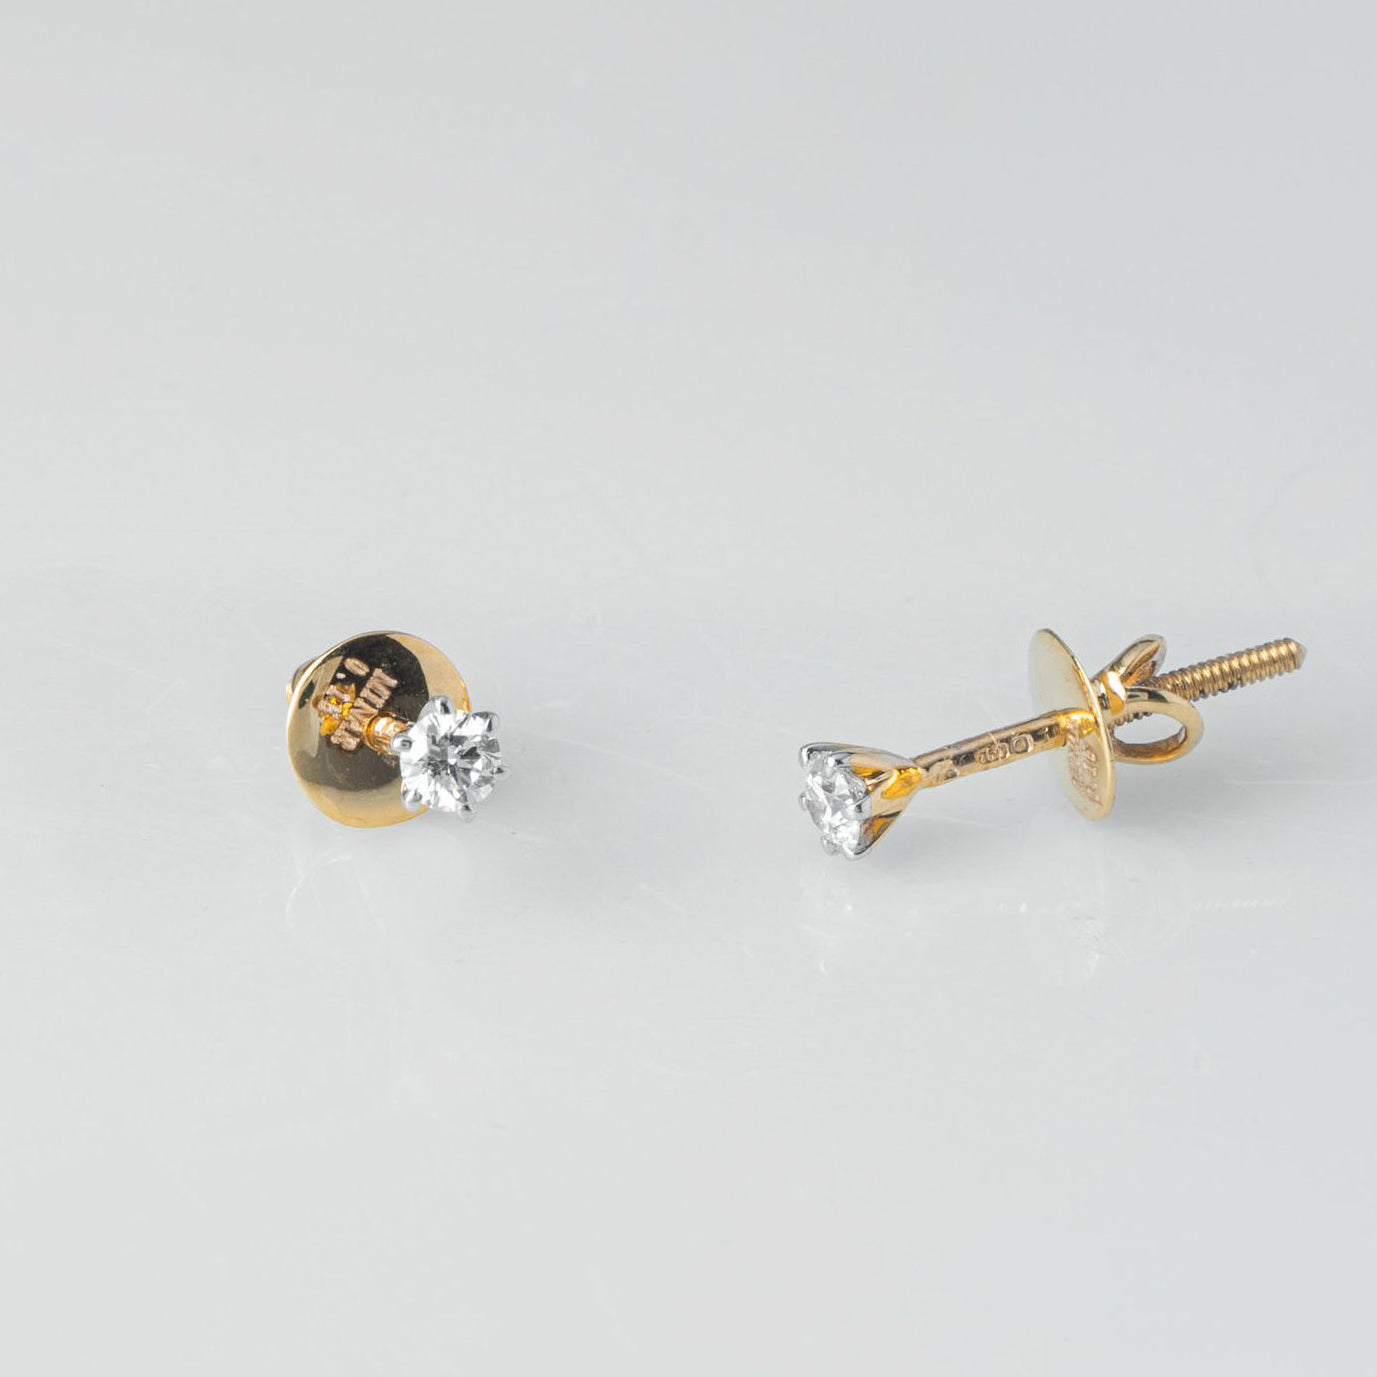 18ct Yellow Gold 0.15ct Round Brilliant Cut Diamond Stud Earrings (MCS3689)